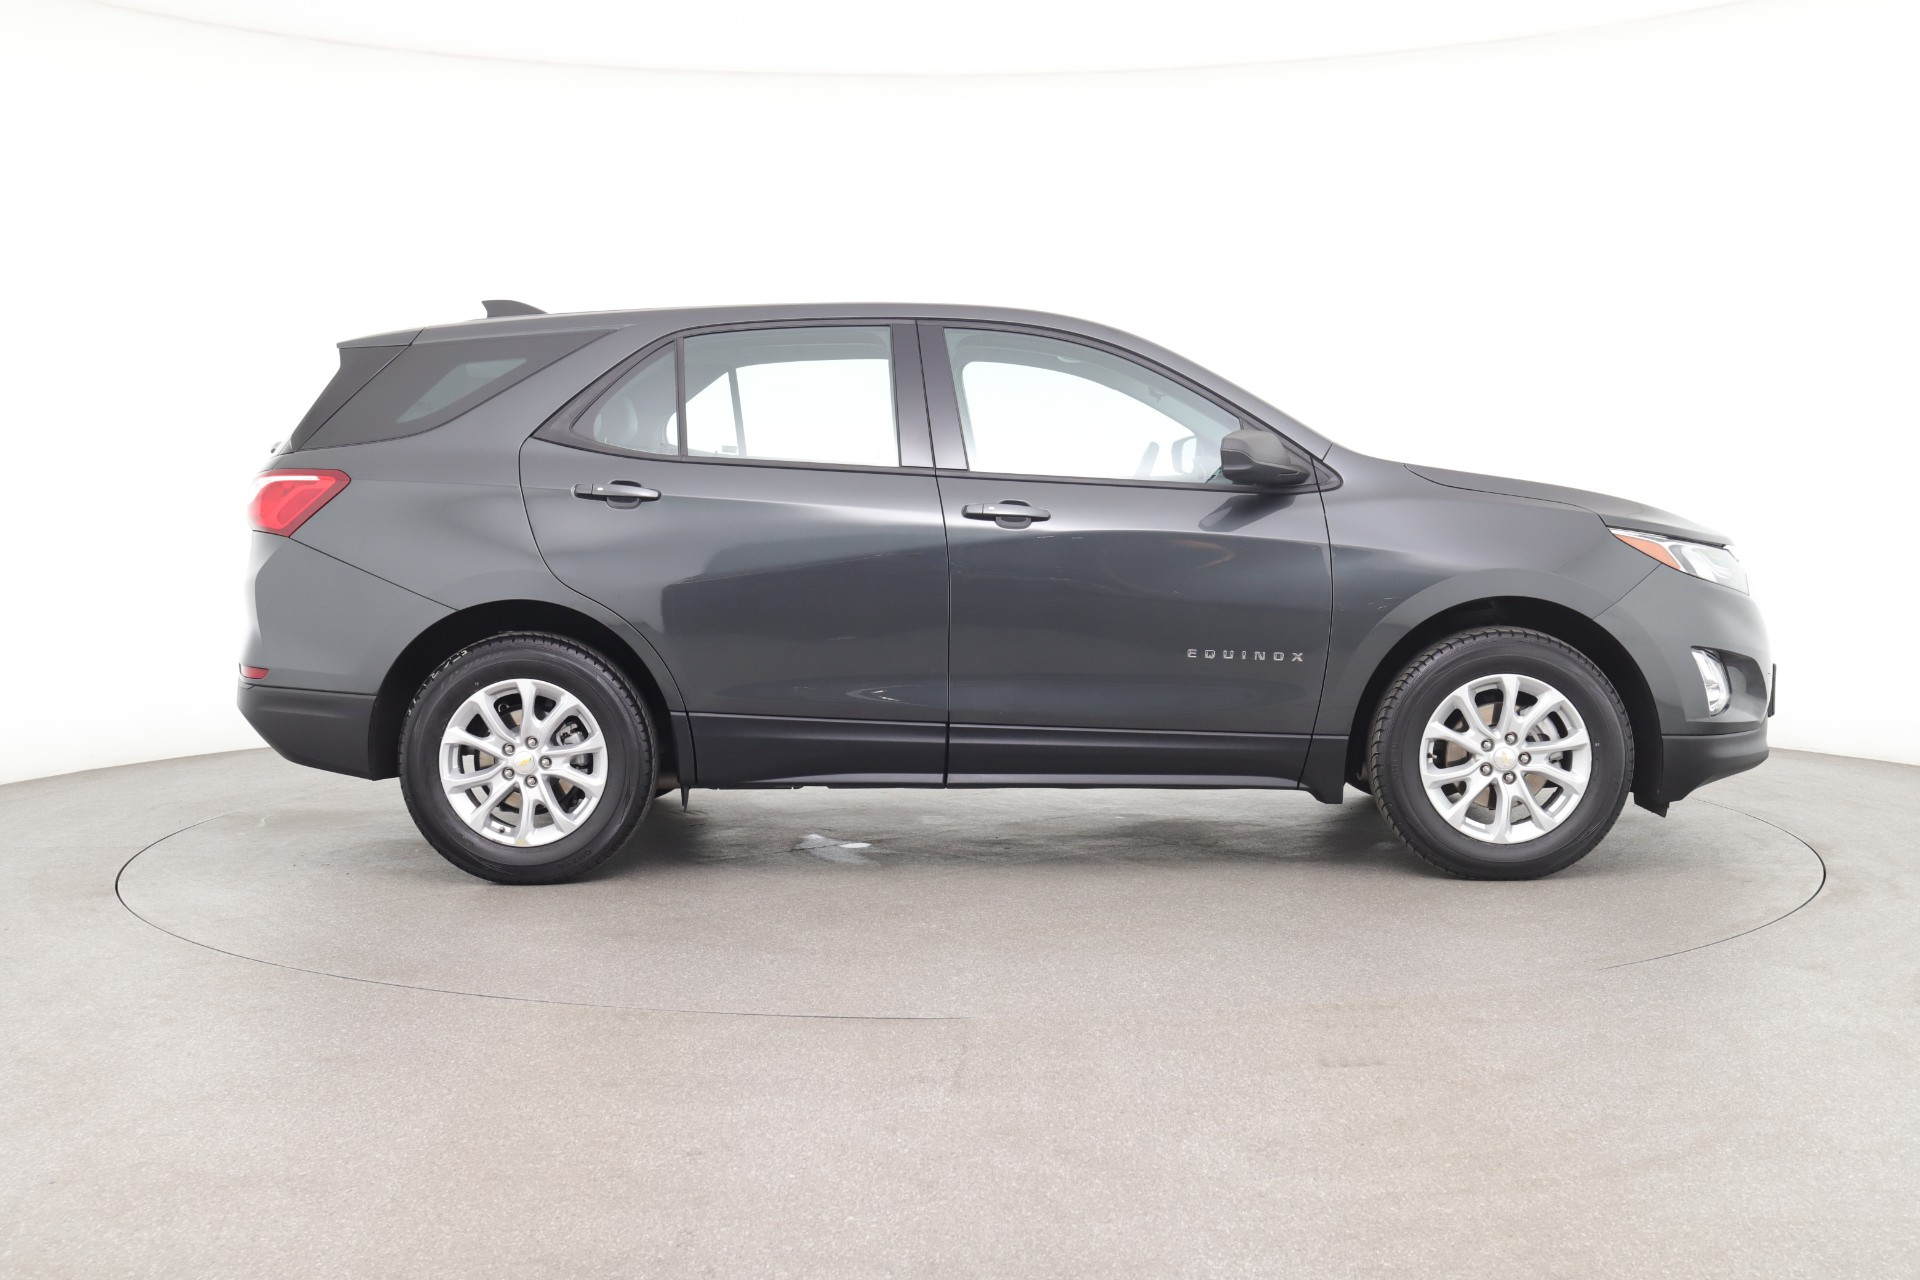 Chevy Equinox Reviews: Price, Reliability and More